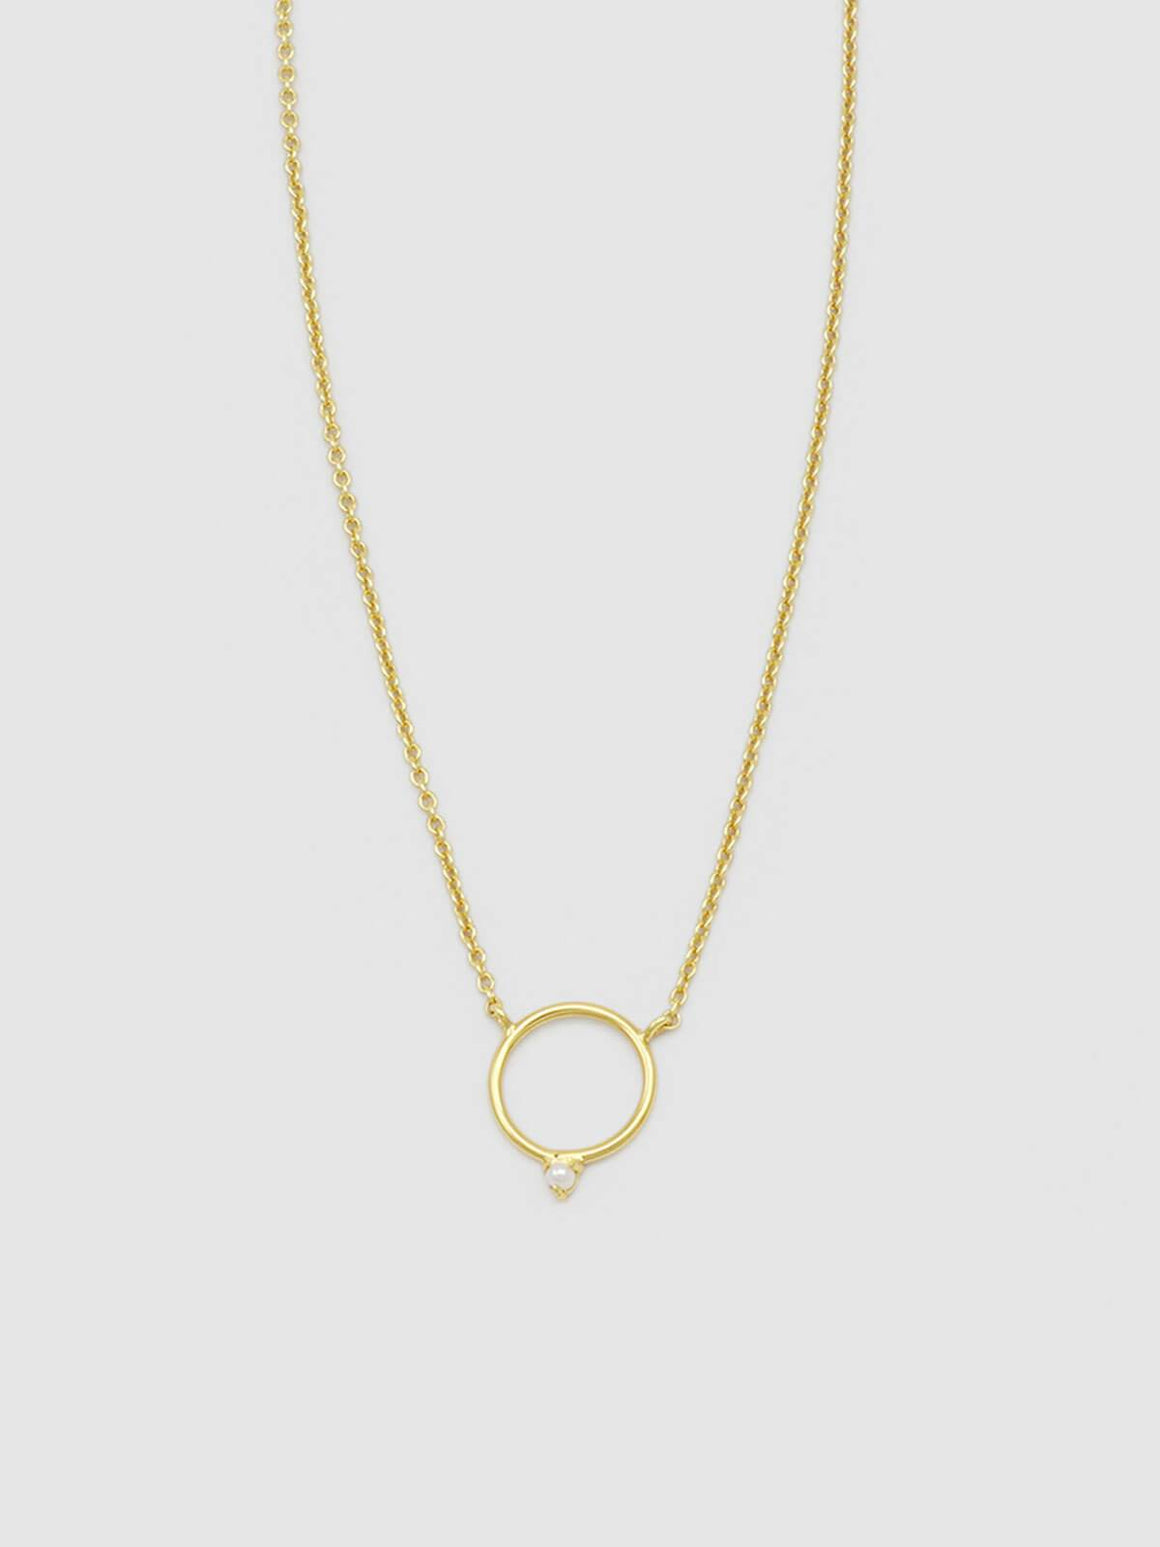 Jolie & Deen Circle and Pearl Necklace - Gold | Perlu